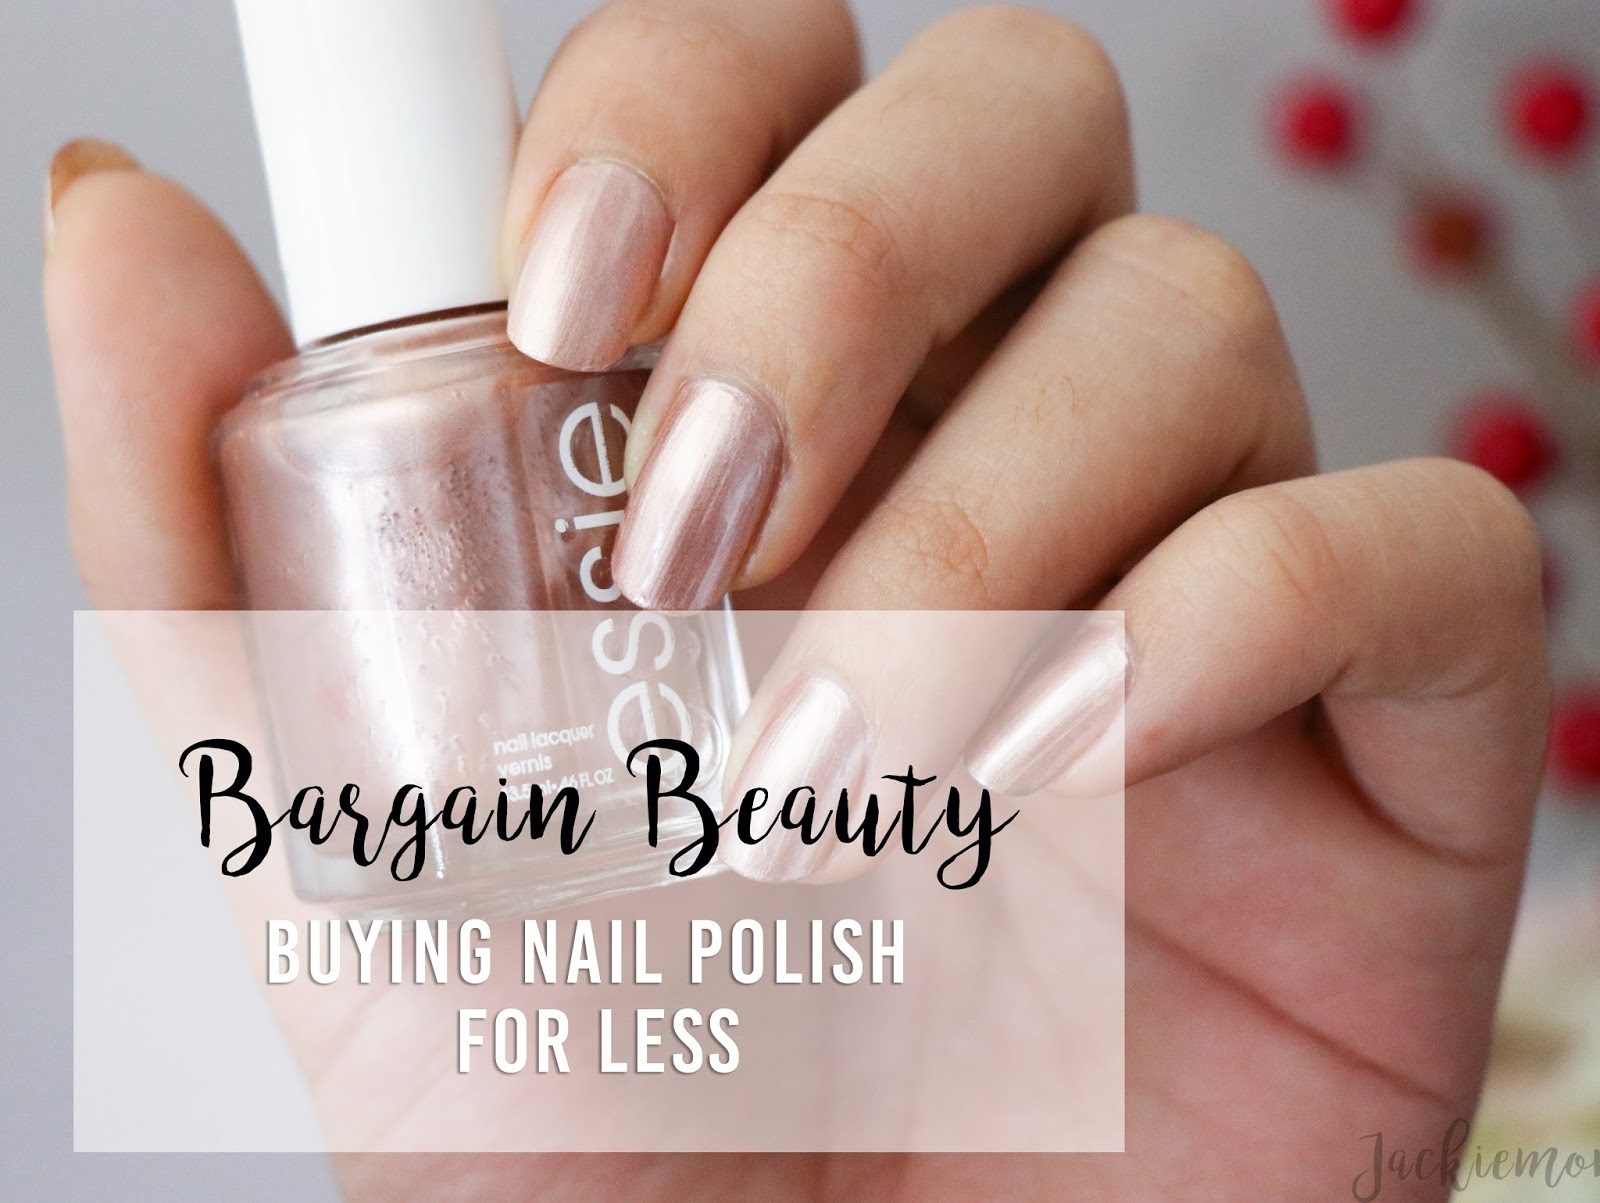 Where To Buy Essie Nail Polish Cheap | Splendid Wedding Company